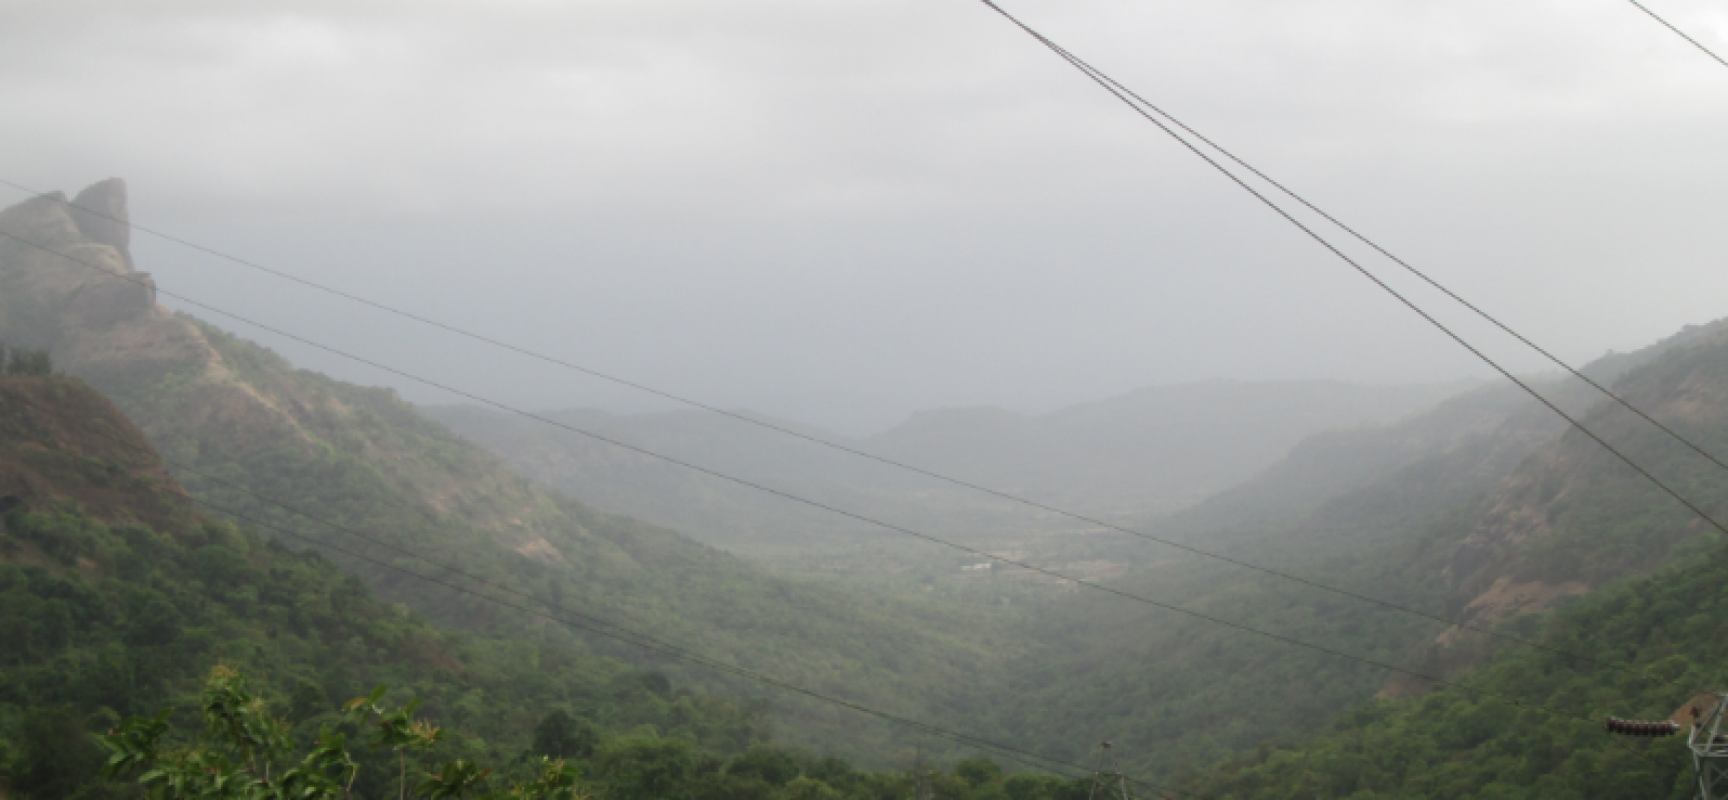 Travelogue: Lonavala and Khandala, the enchanting hilly retreats